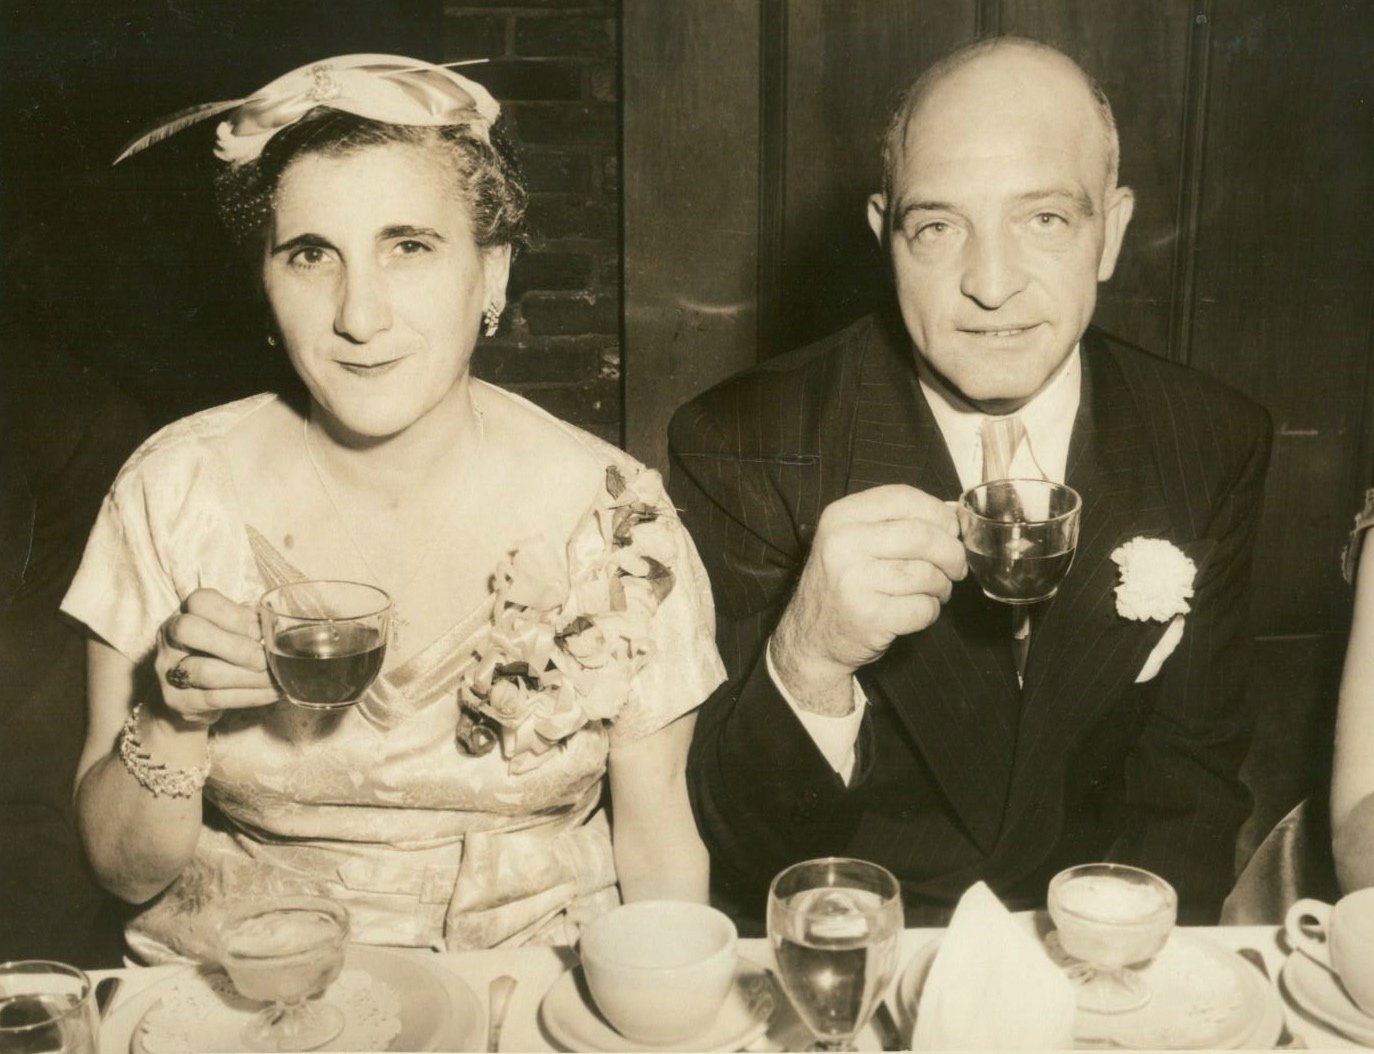 My Grandmother Mary Ridini and Grandfather Leo Ridini